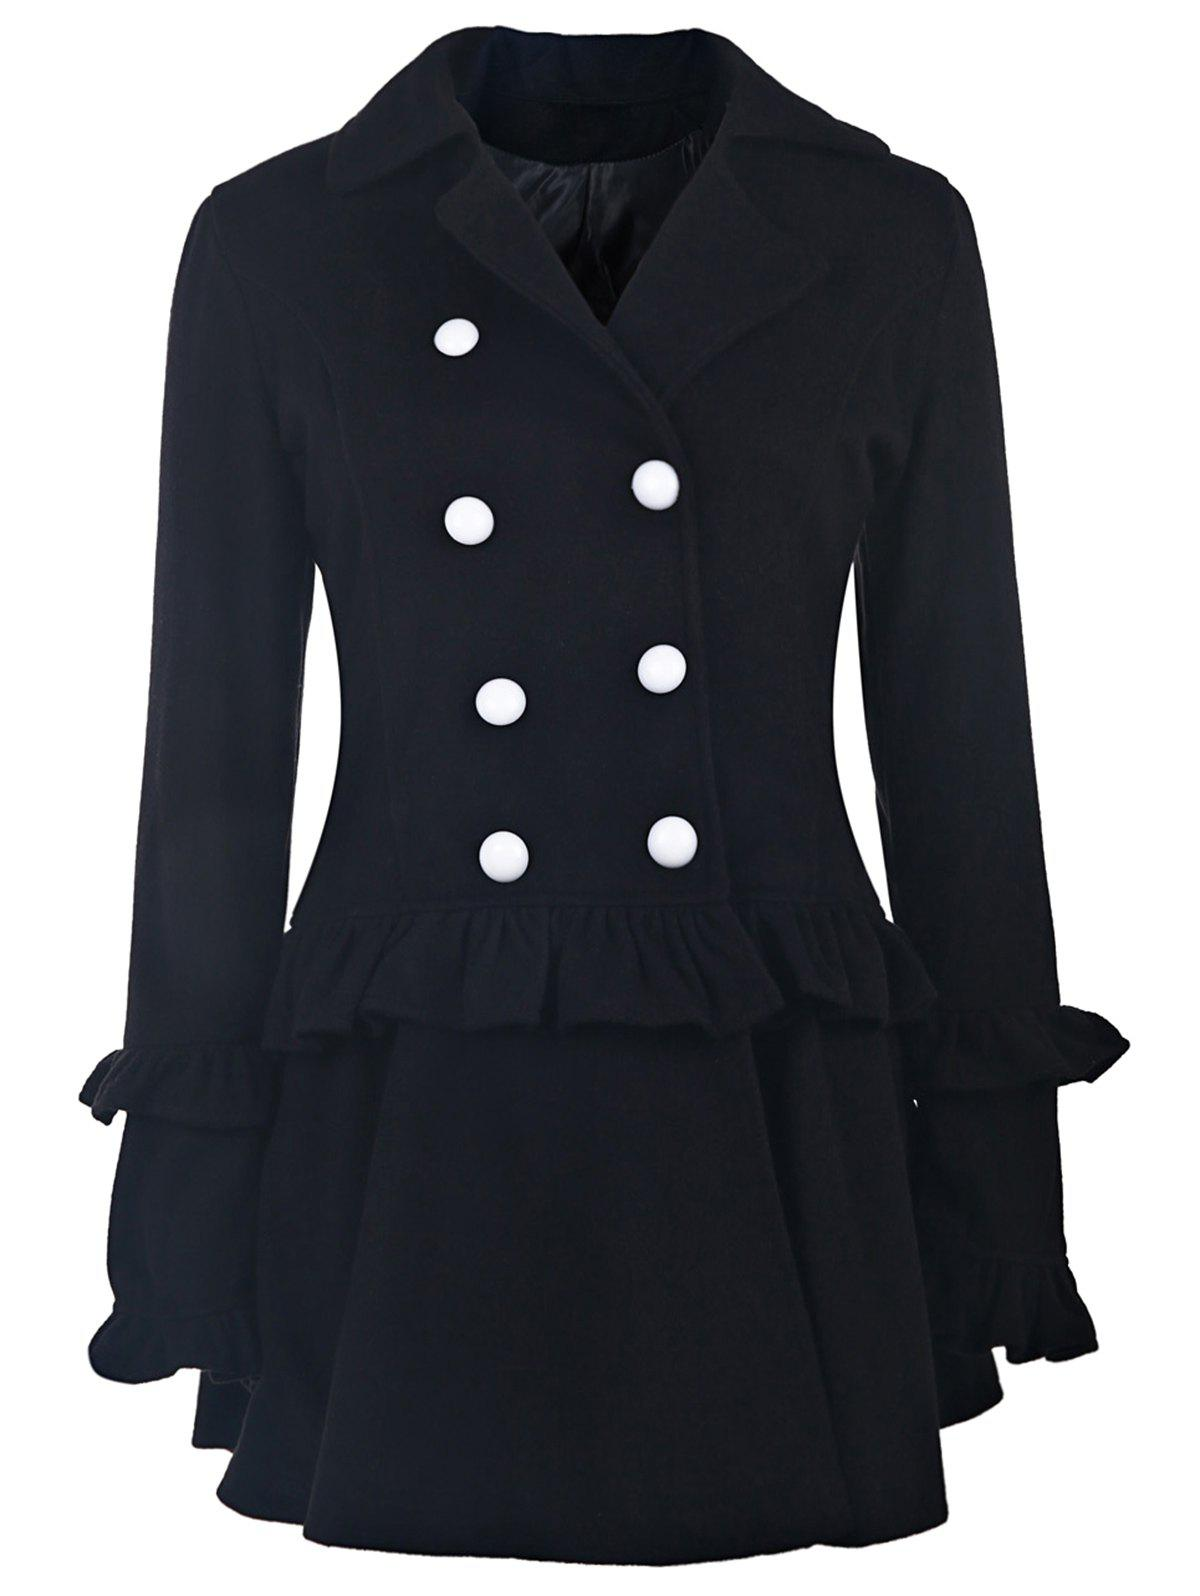 Elegant Long Sleeve Turn-Down Collar Double-Breasted Ruffles Women's Black Coat - BLACK M